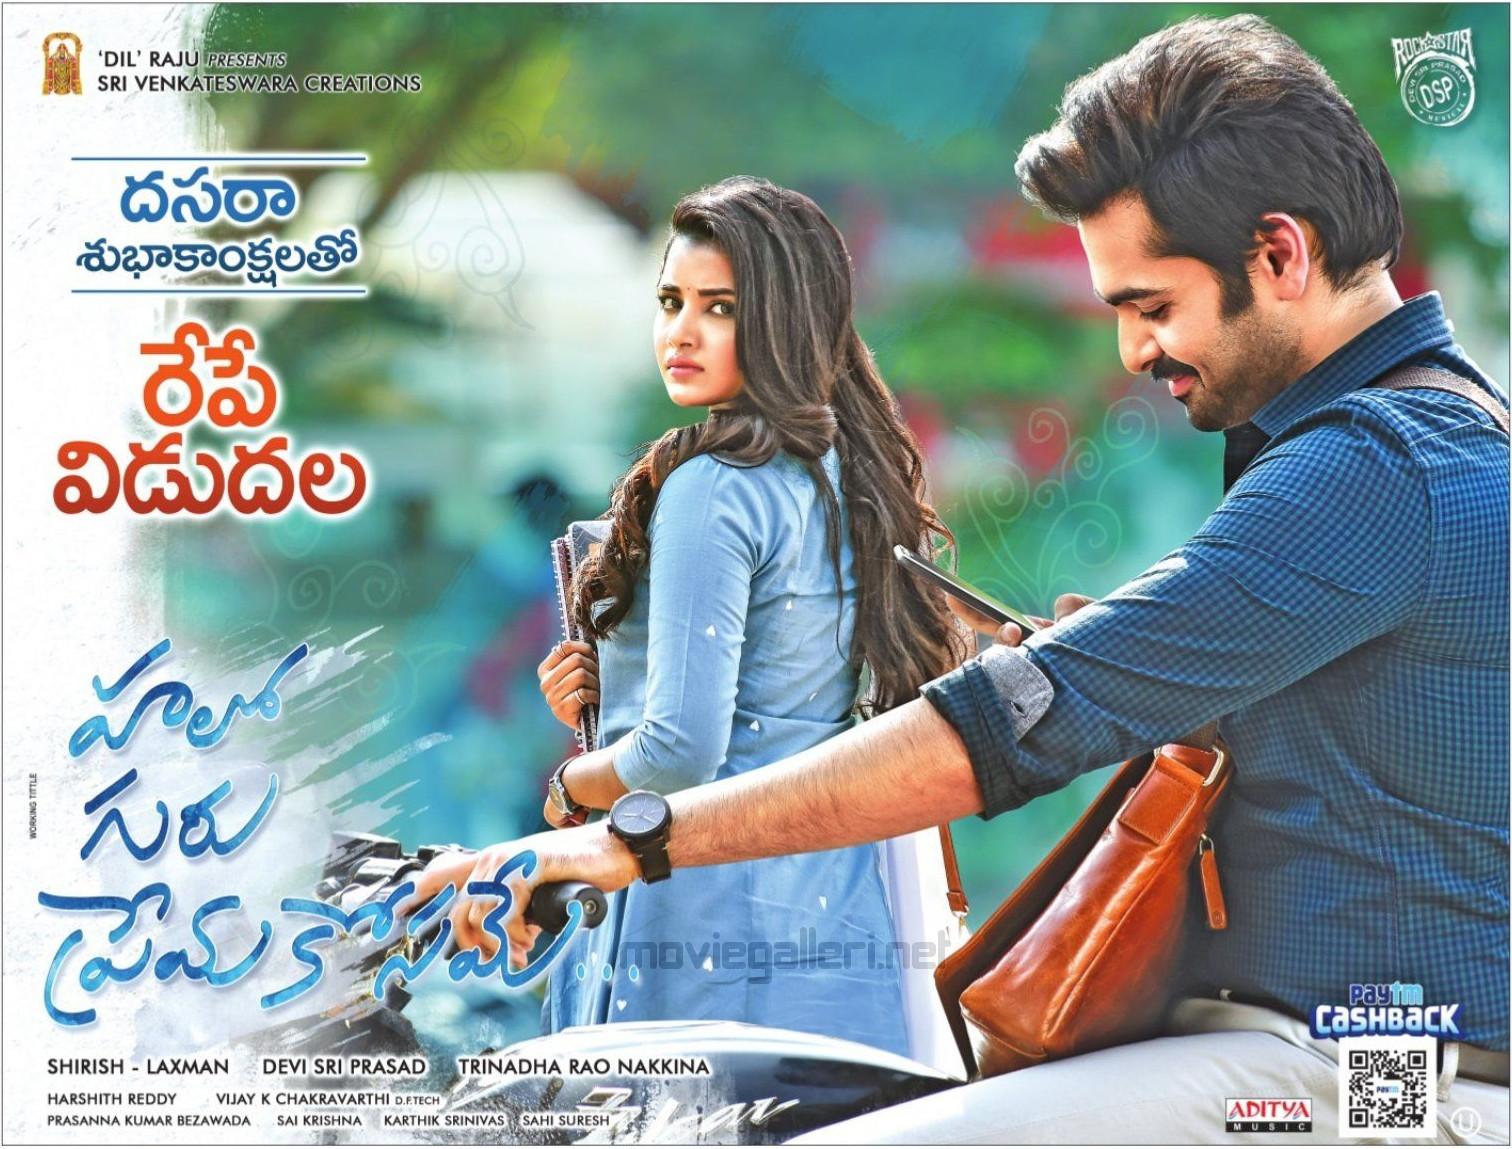 Anupama Parameswaran Ram Pothineni Hello Guru Prema Kosame Movie Release Tomorrow Posters